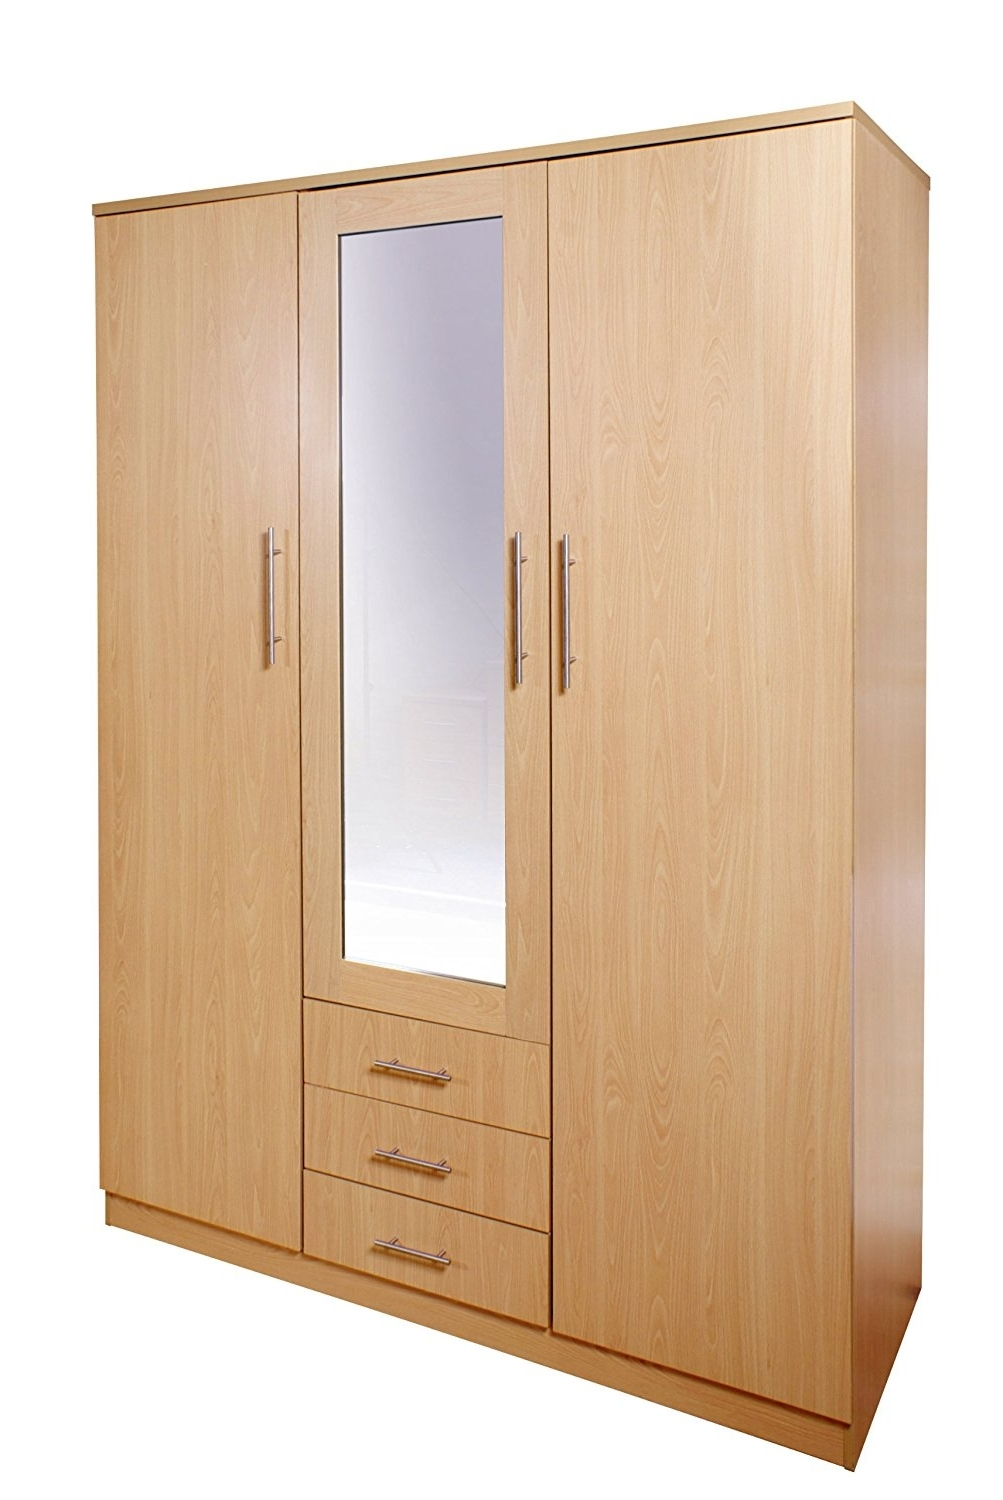 2018 Las Vegas Beech Bedroom Furniture Range – 3 Door Wardrobe With With Cheap Wood Wardrobes (View 2 of 15)